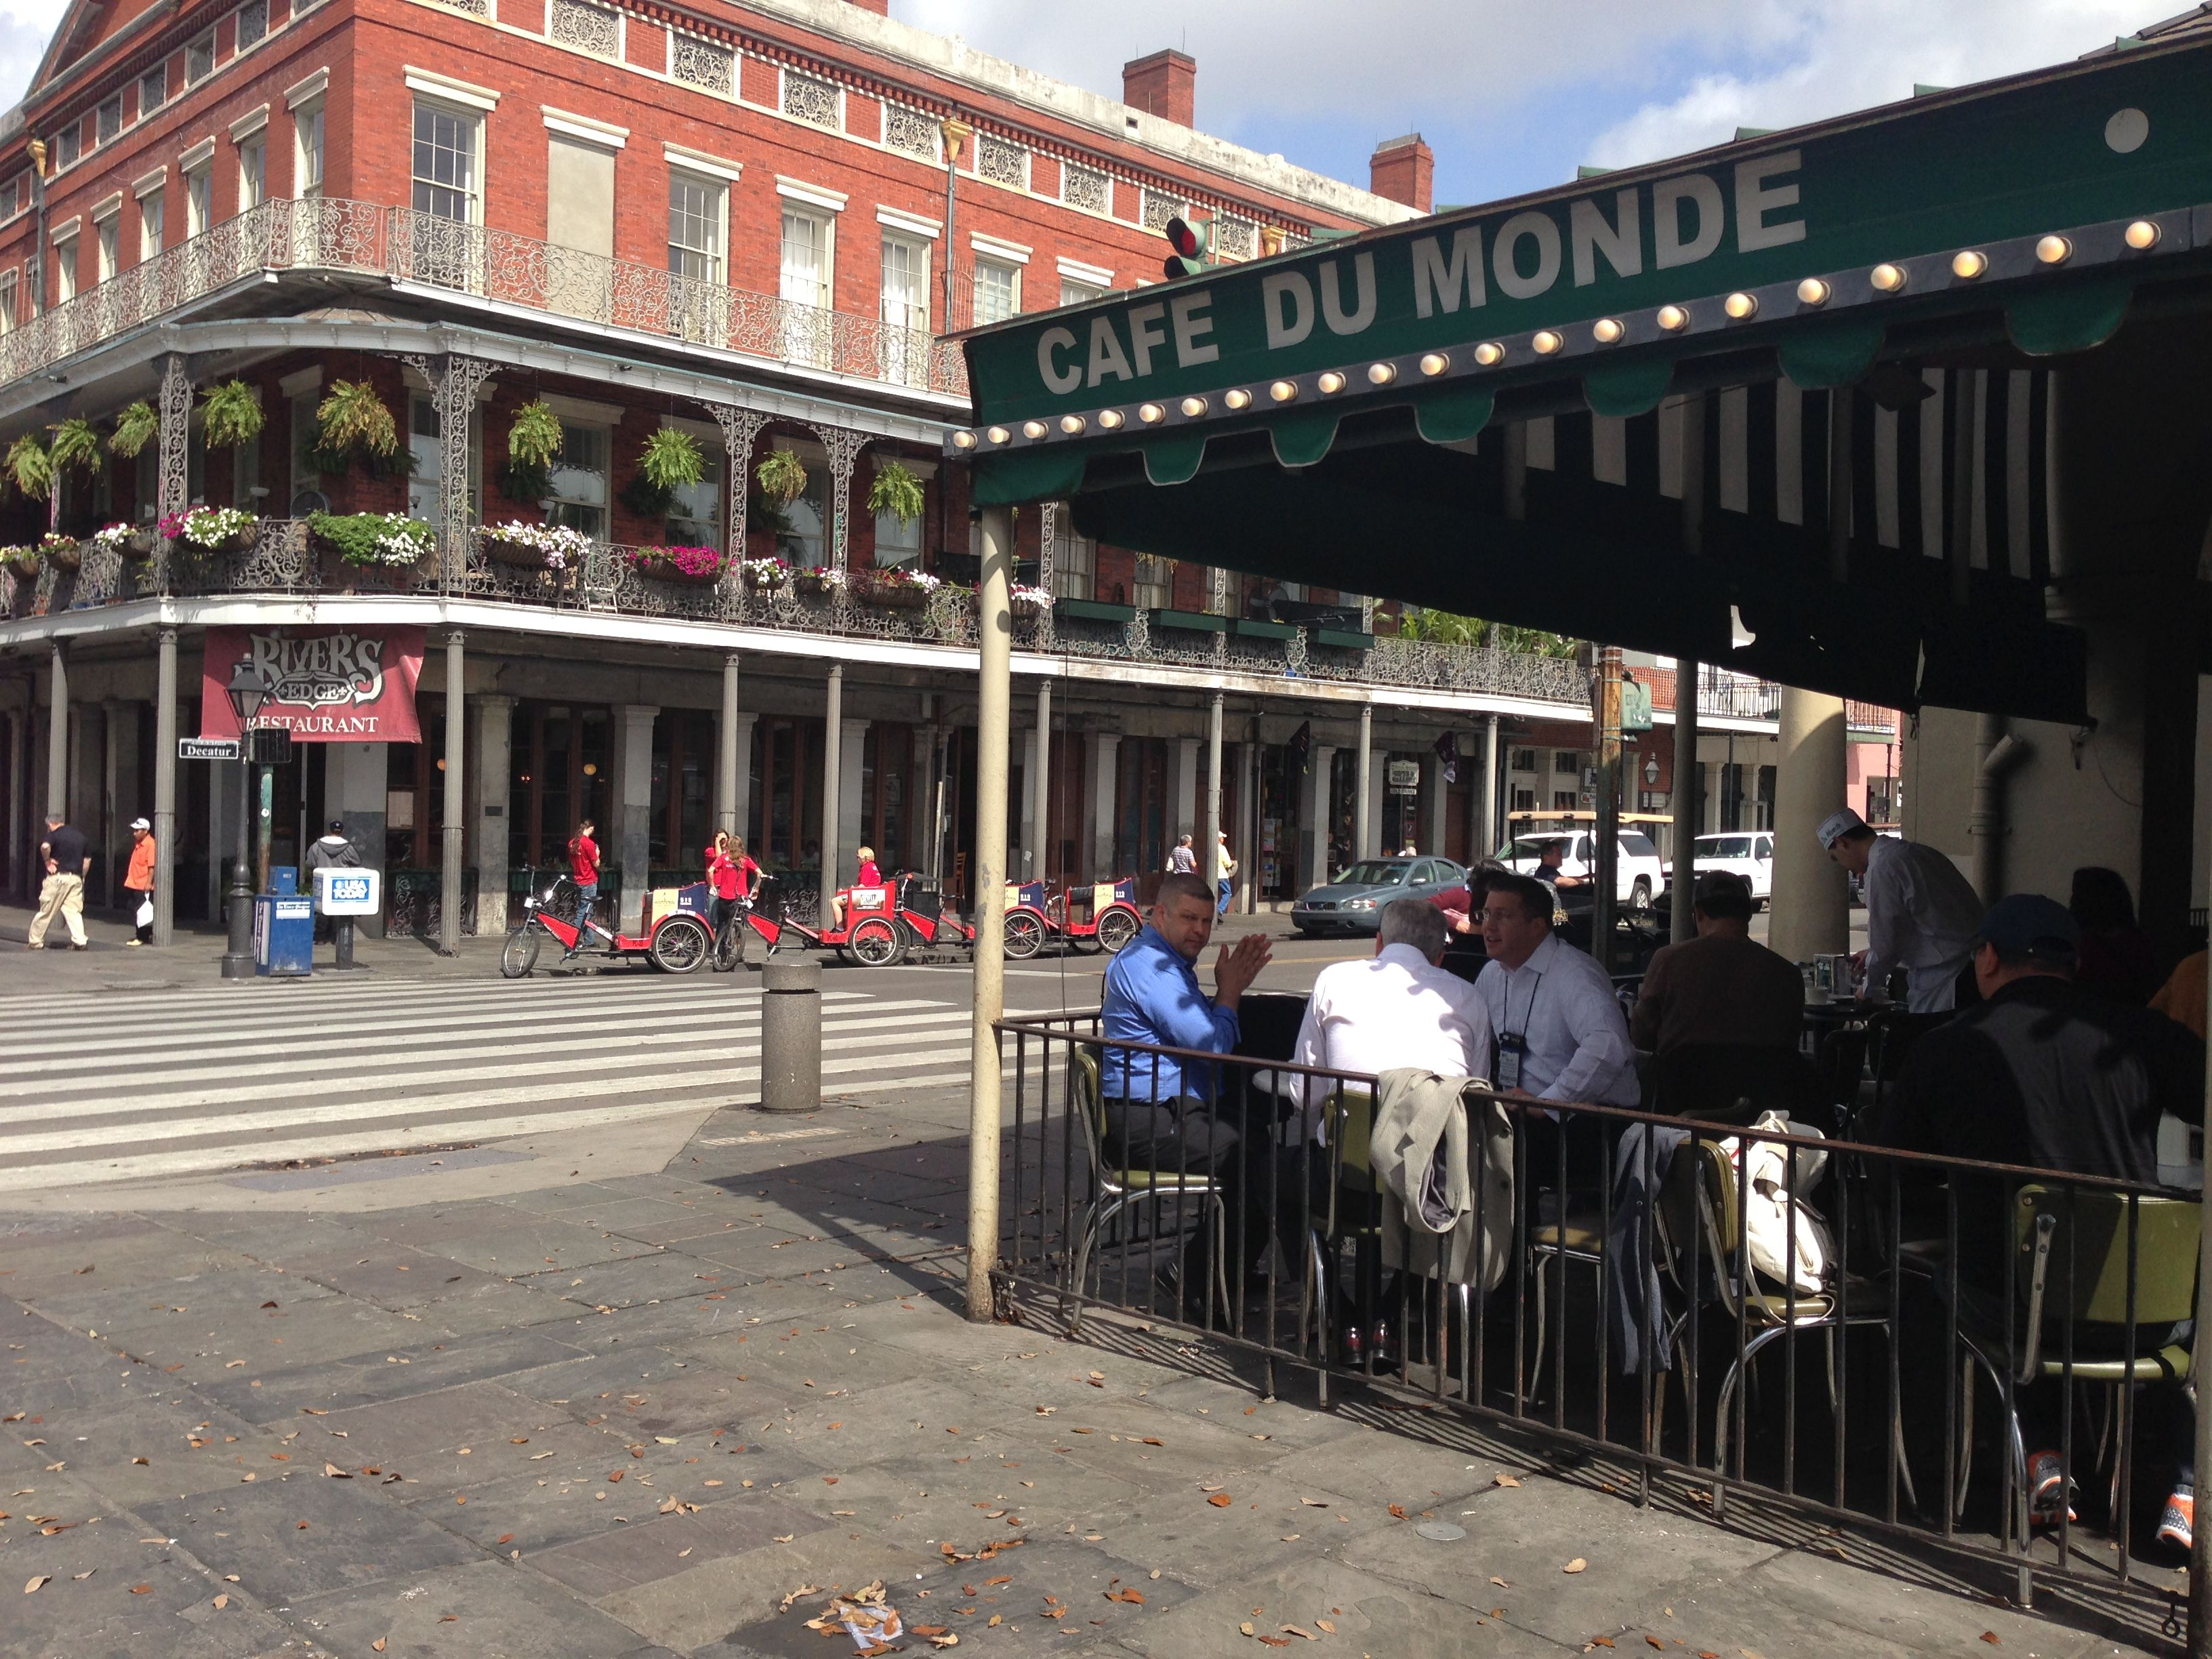 Cafe du Monde | Original Photography by Nadine Avola